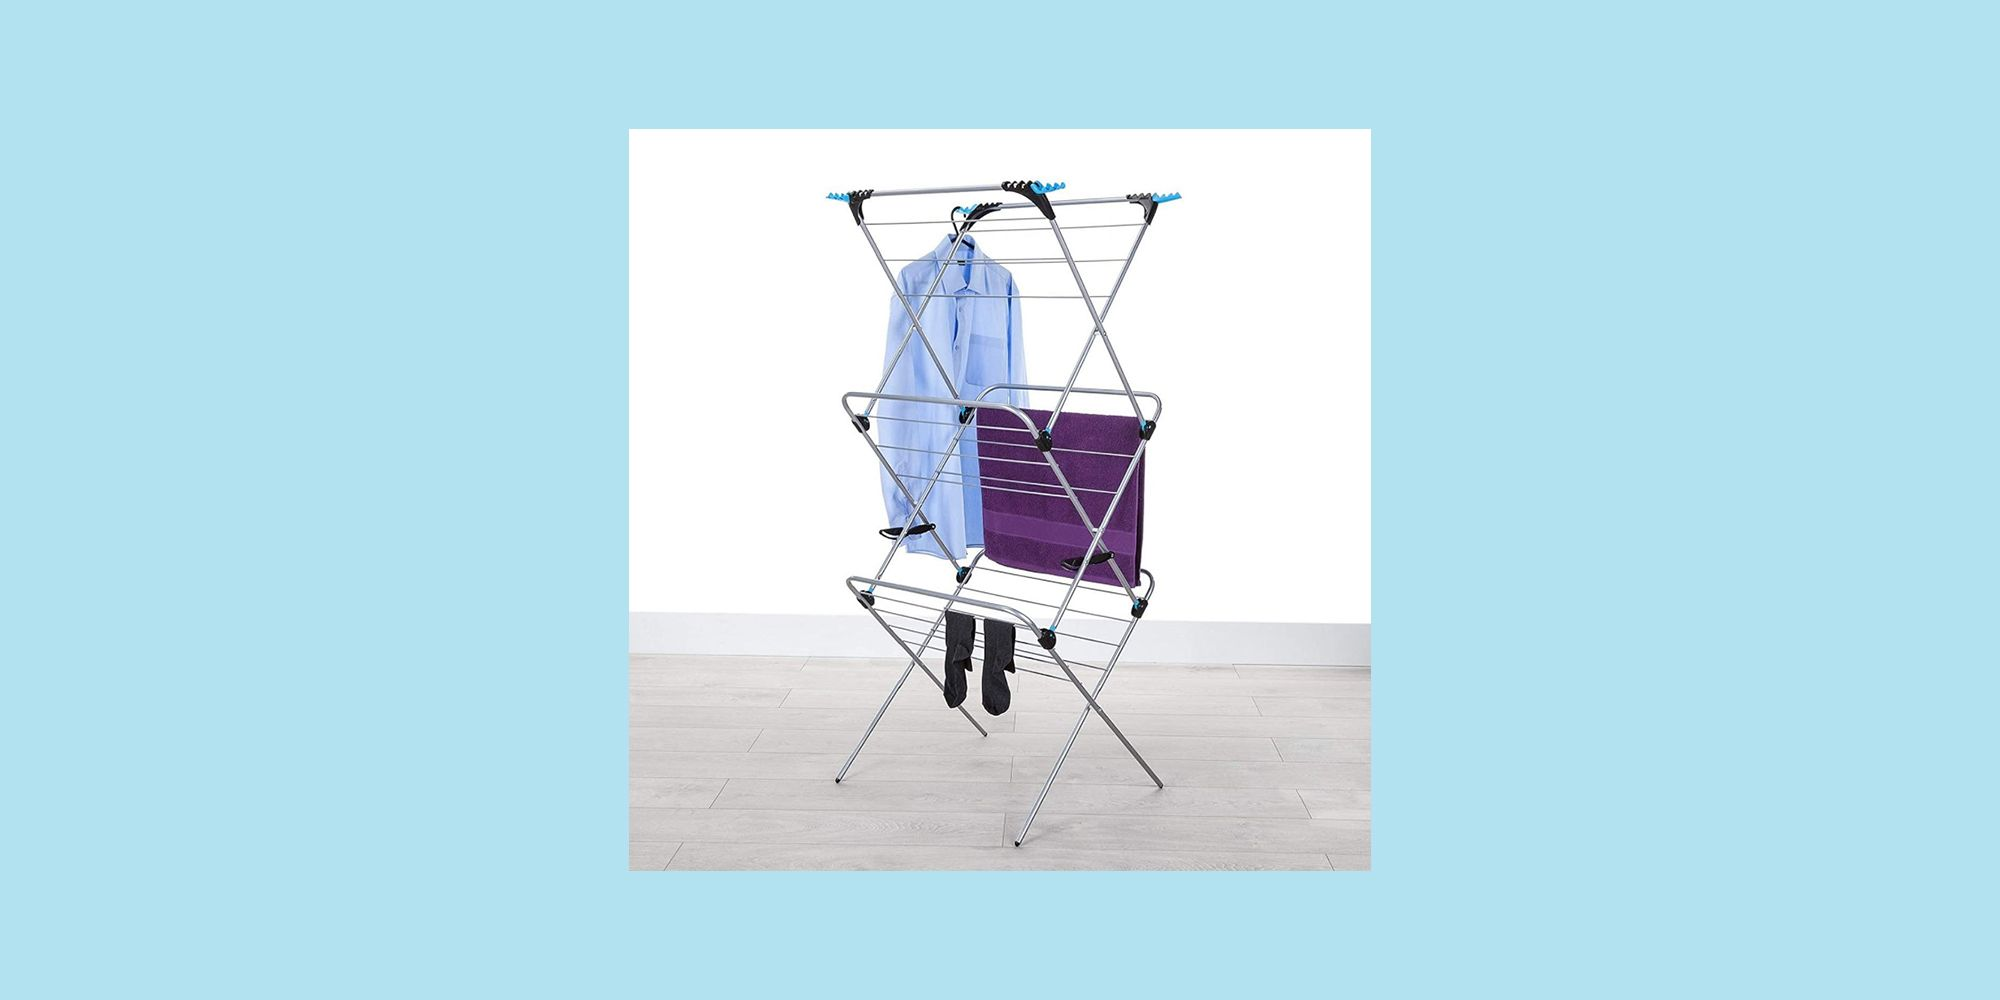 best clothes airers and drying racks 2020